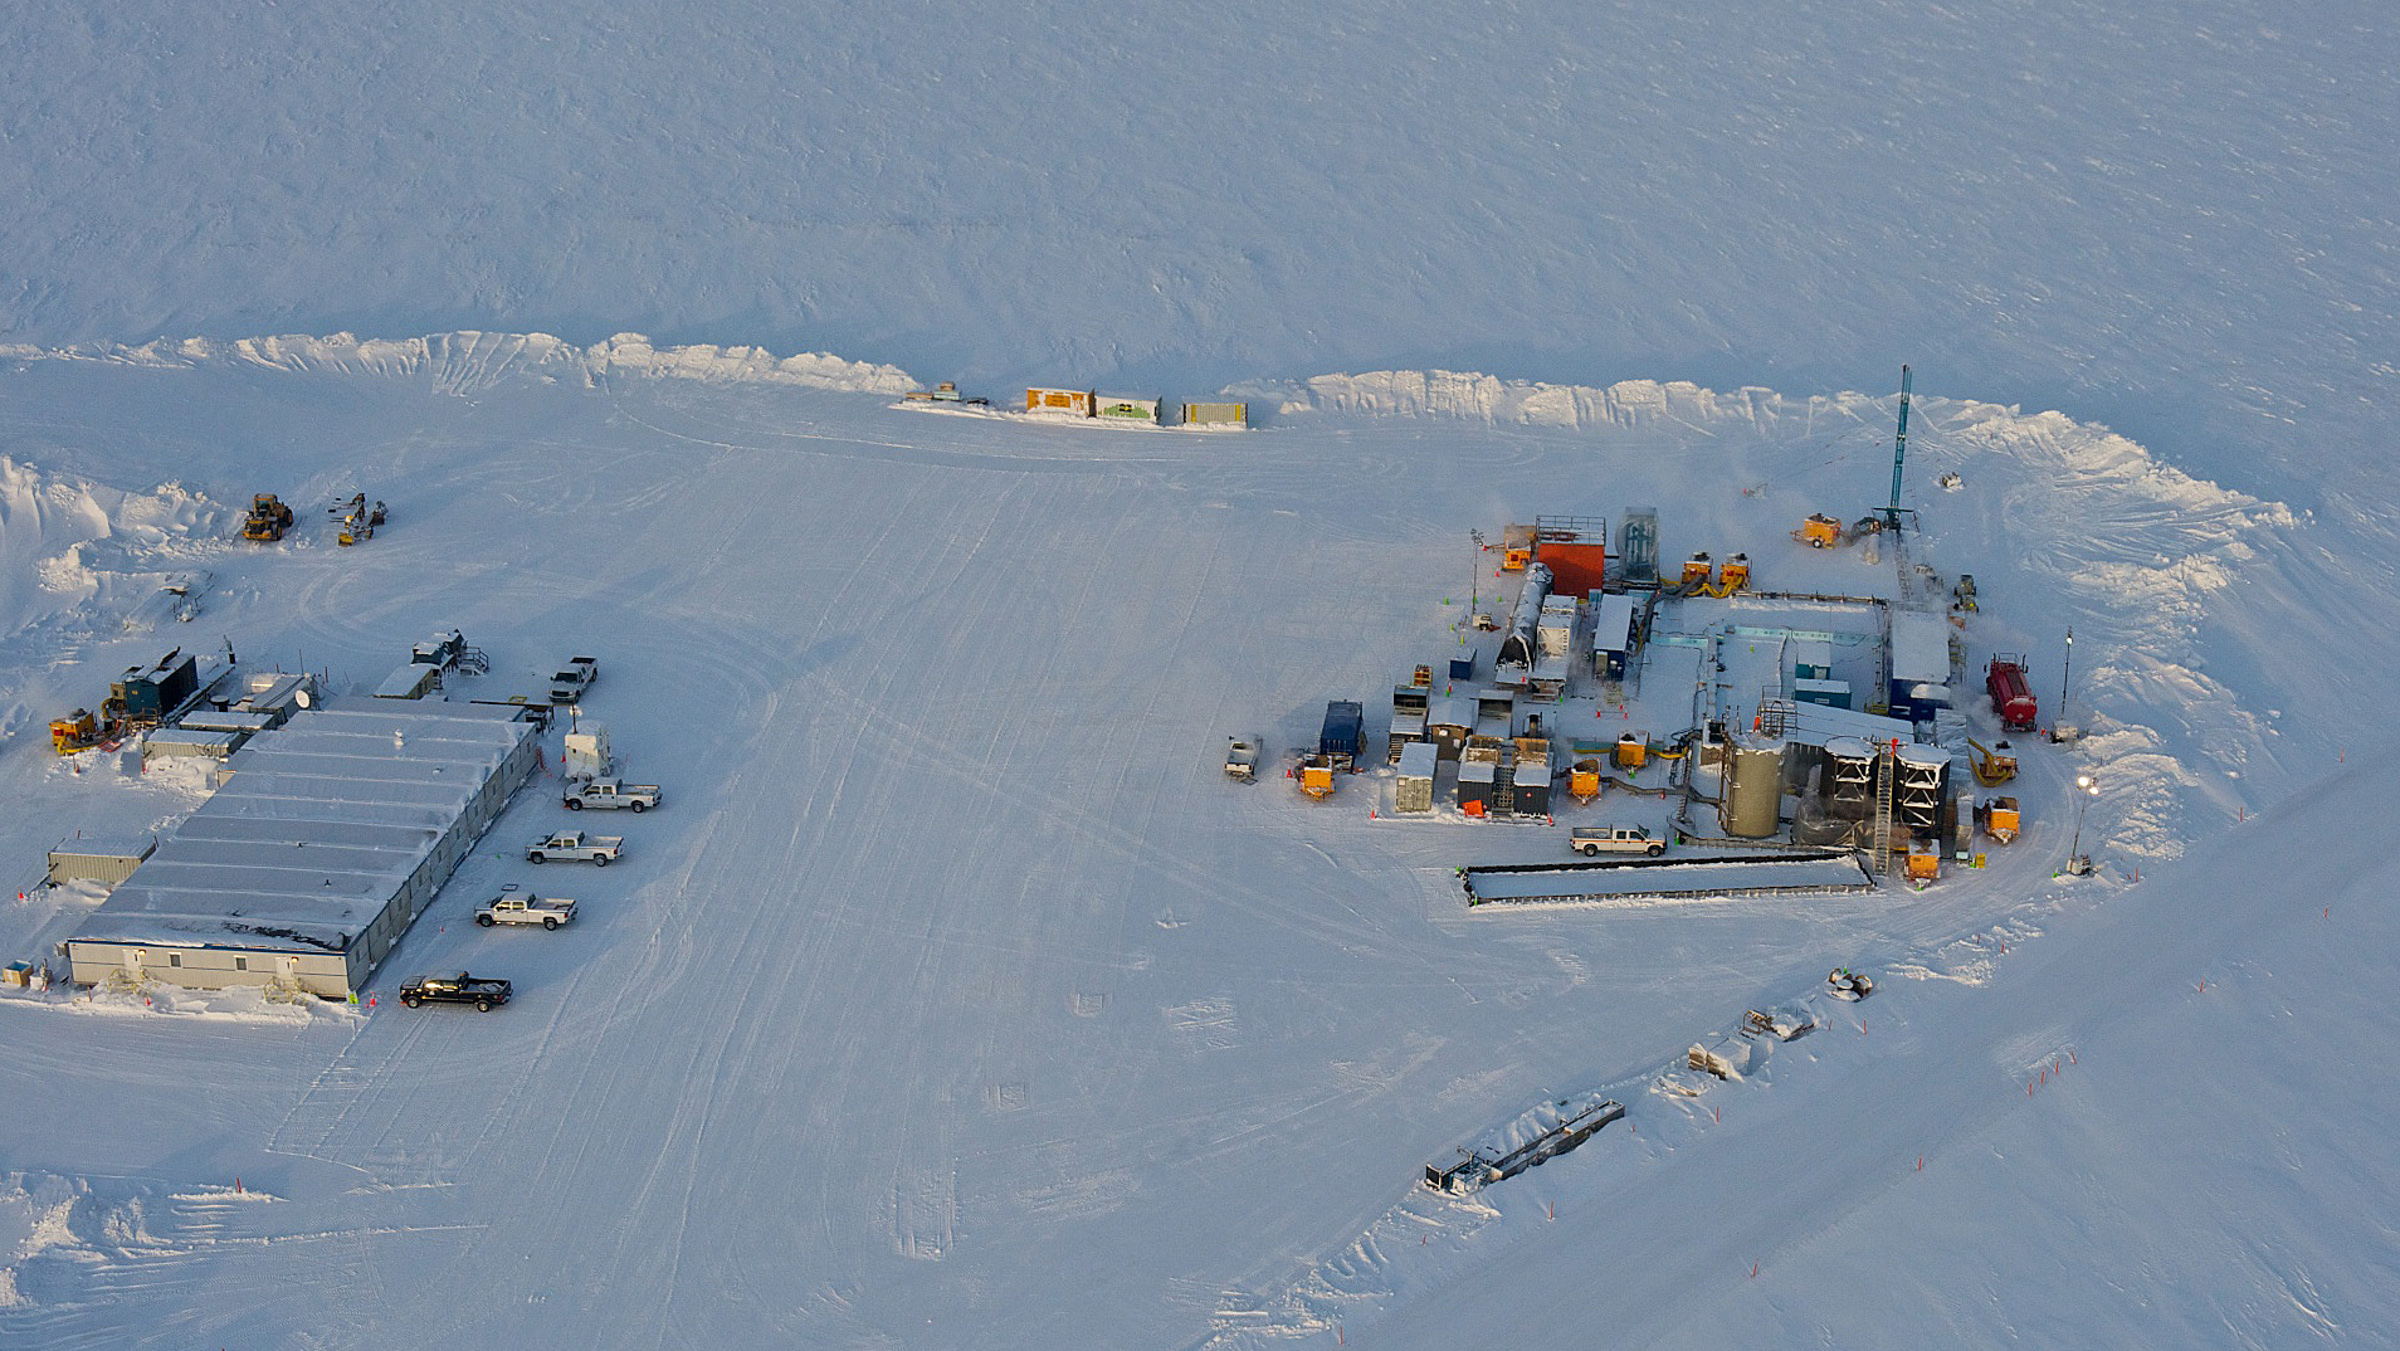 In this 2012 photo provided by ConocoPhillips Alaska Inc., a drill rig at Prudhoe Bay on Alaska's North Slope is seen. This rig is testing a method for extracting methane from methane hydrate. The department describes methane hydrate as a lattice of ice that traps methane molecules but does not bind them chemically. A half mile below the ground at Prudhoe Bay, above the vast oil field that helped trigger construction of the trans-Alaska pipeline, a drill rig has tapped what might one day be the next big energy source. The U.S. Department of Energy and industry partners over two winters drilled into a reservoir of methane hydrate, which looks like ice but burns like a candle as warmth from a match releases methane molecules.